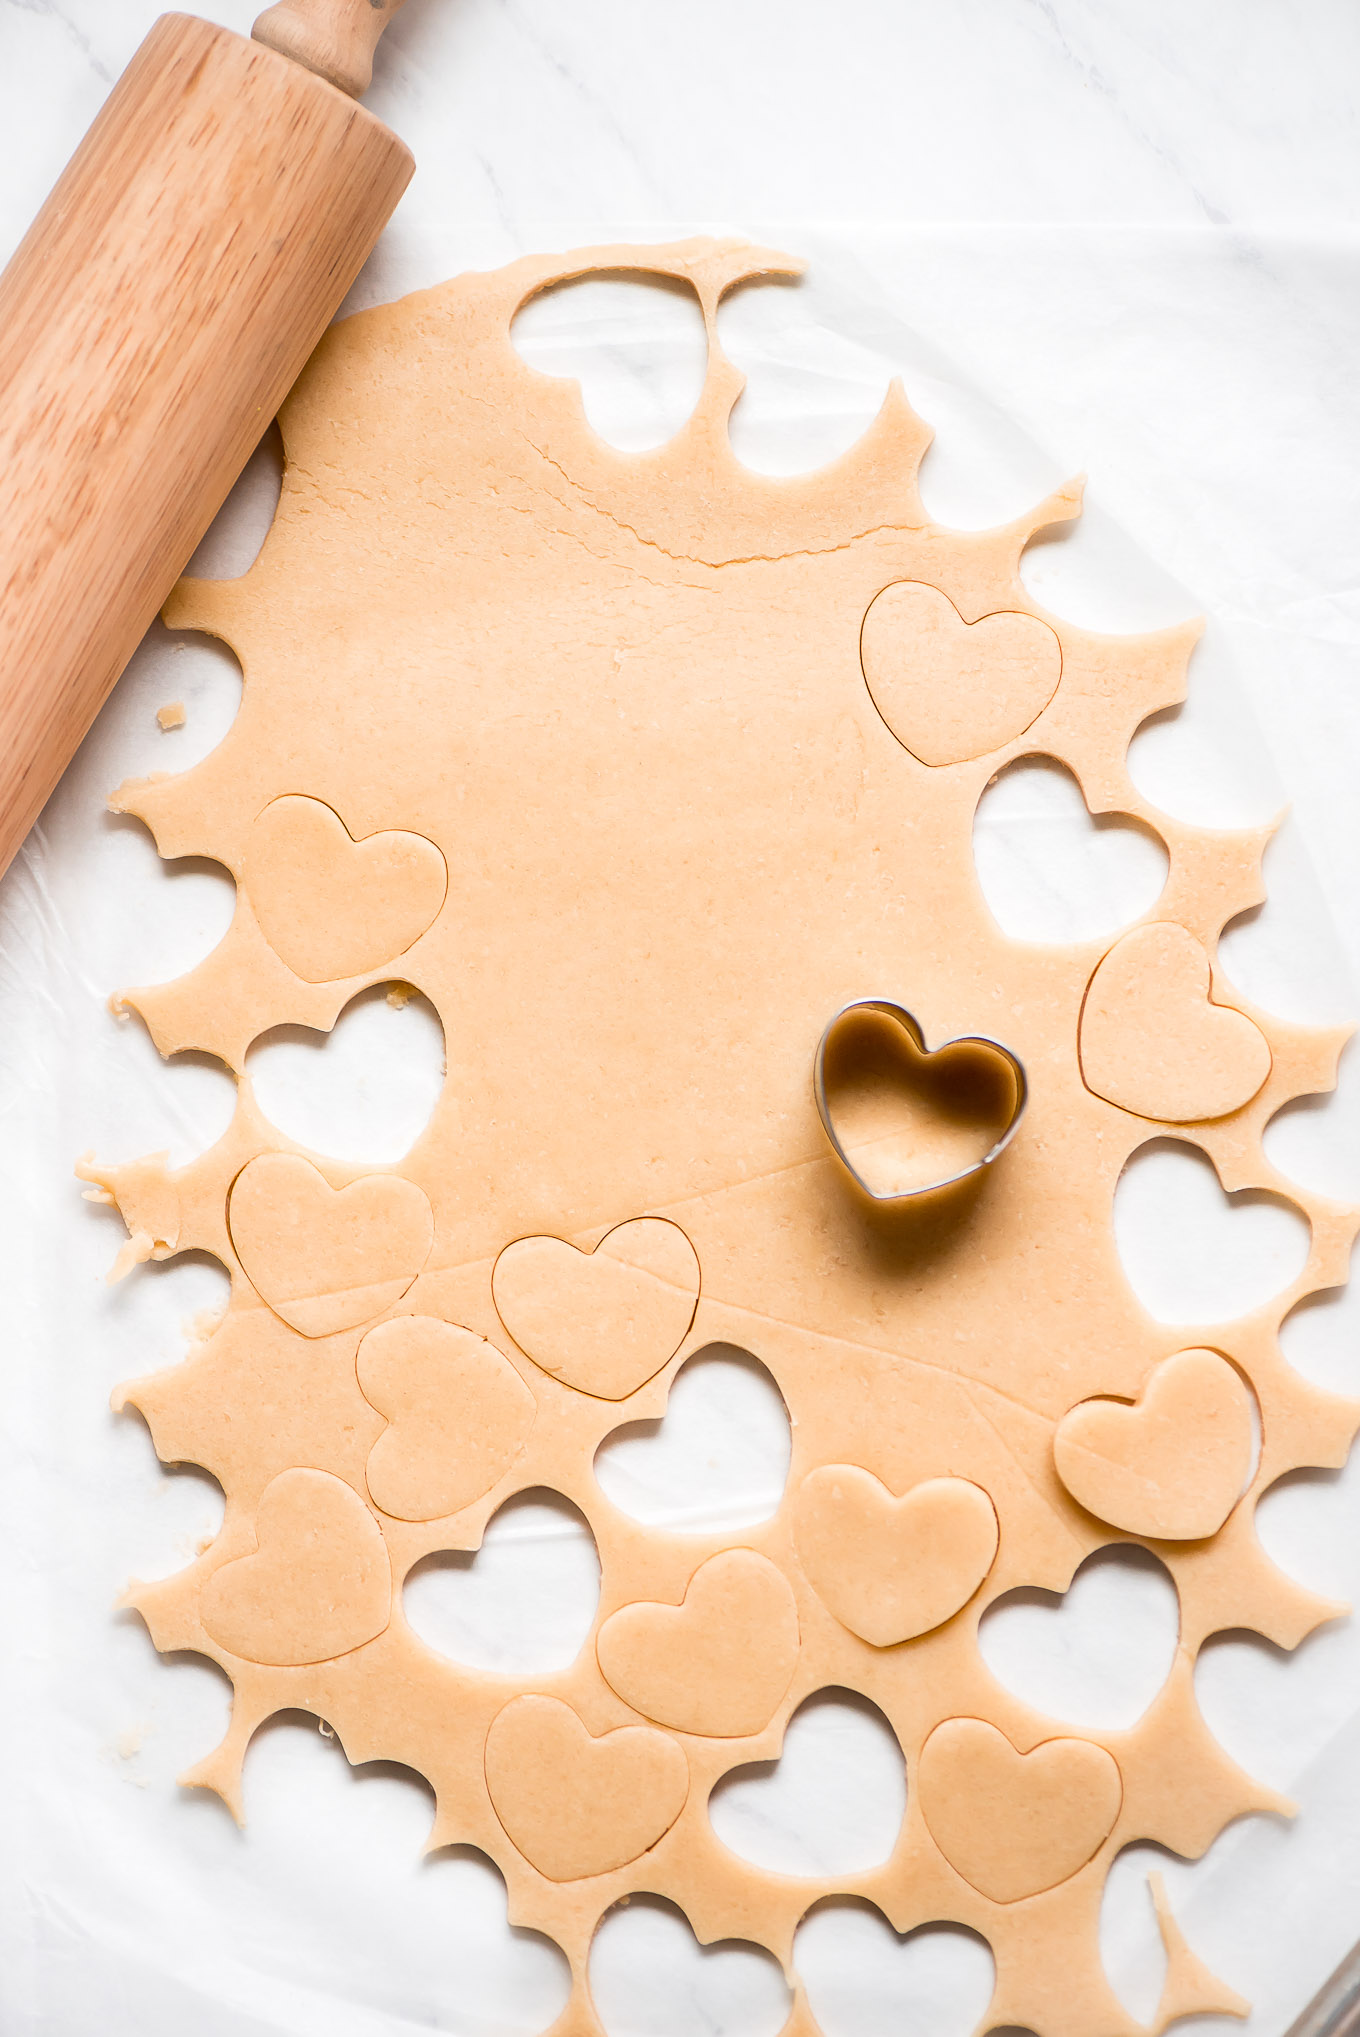 Shortbread cookie dough with heart shaped cookie cutter and some cut out dough already removed.